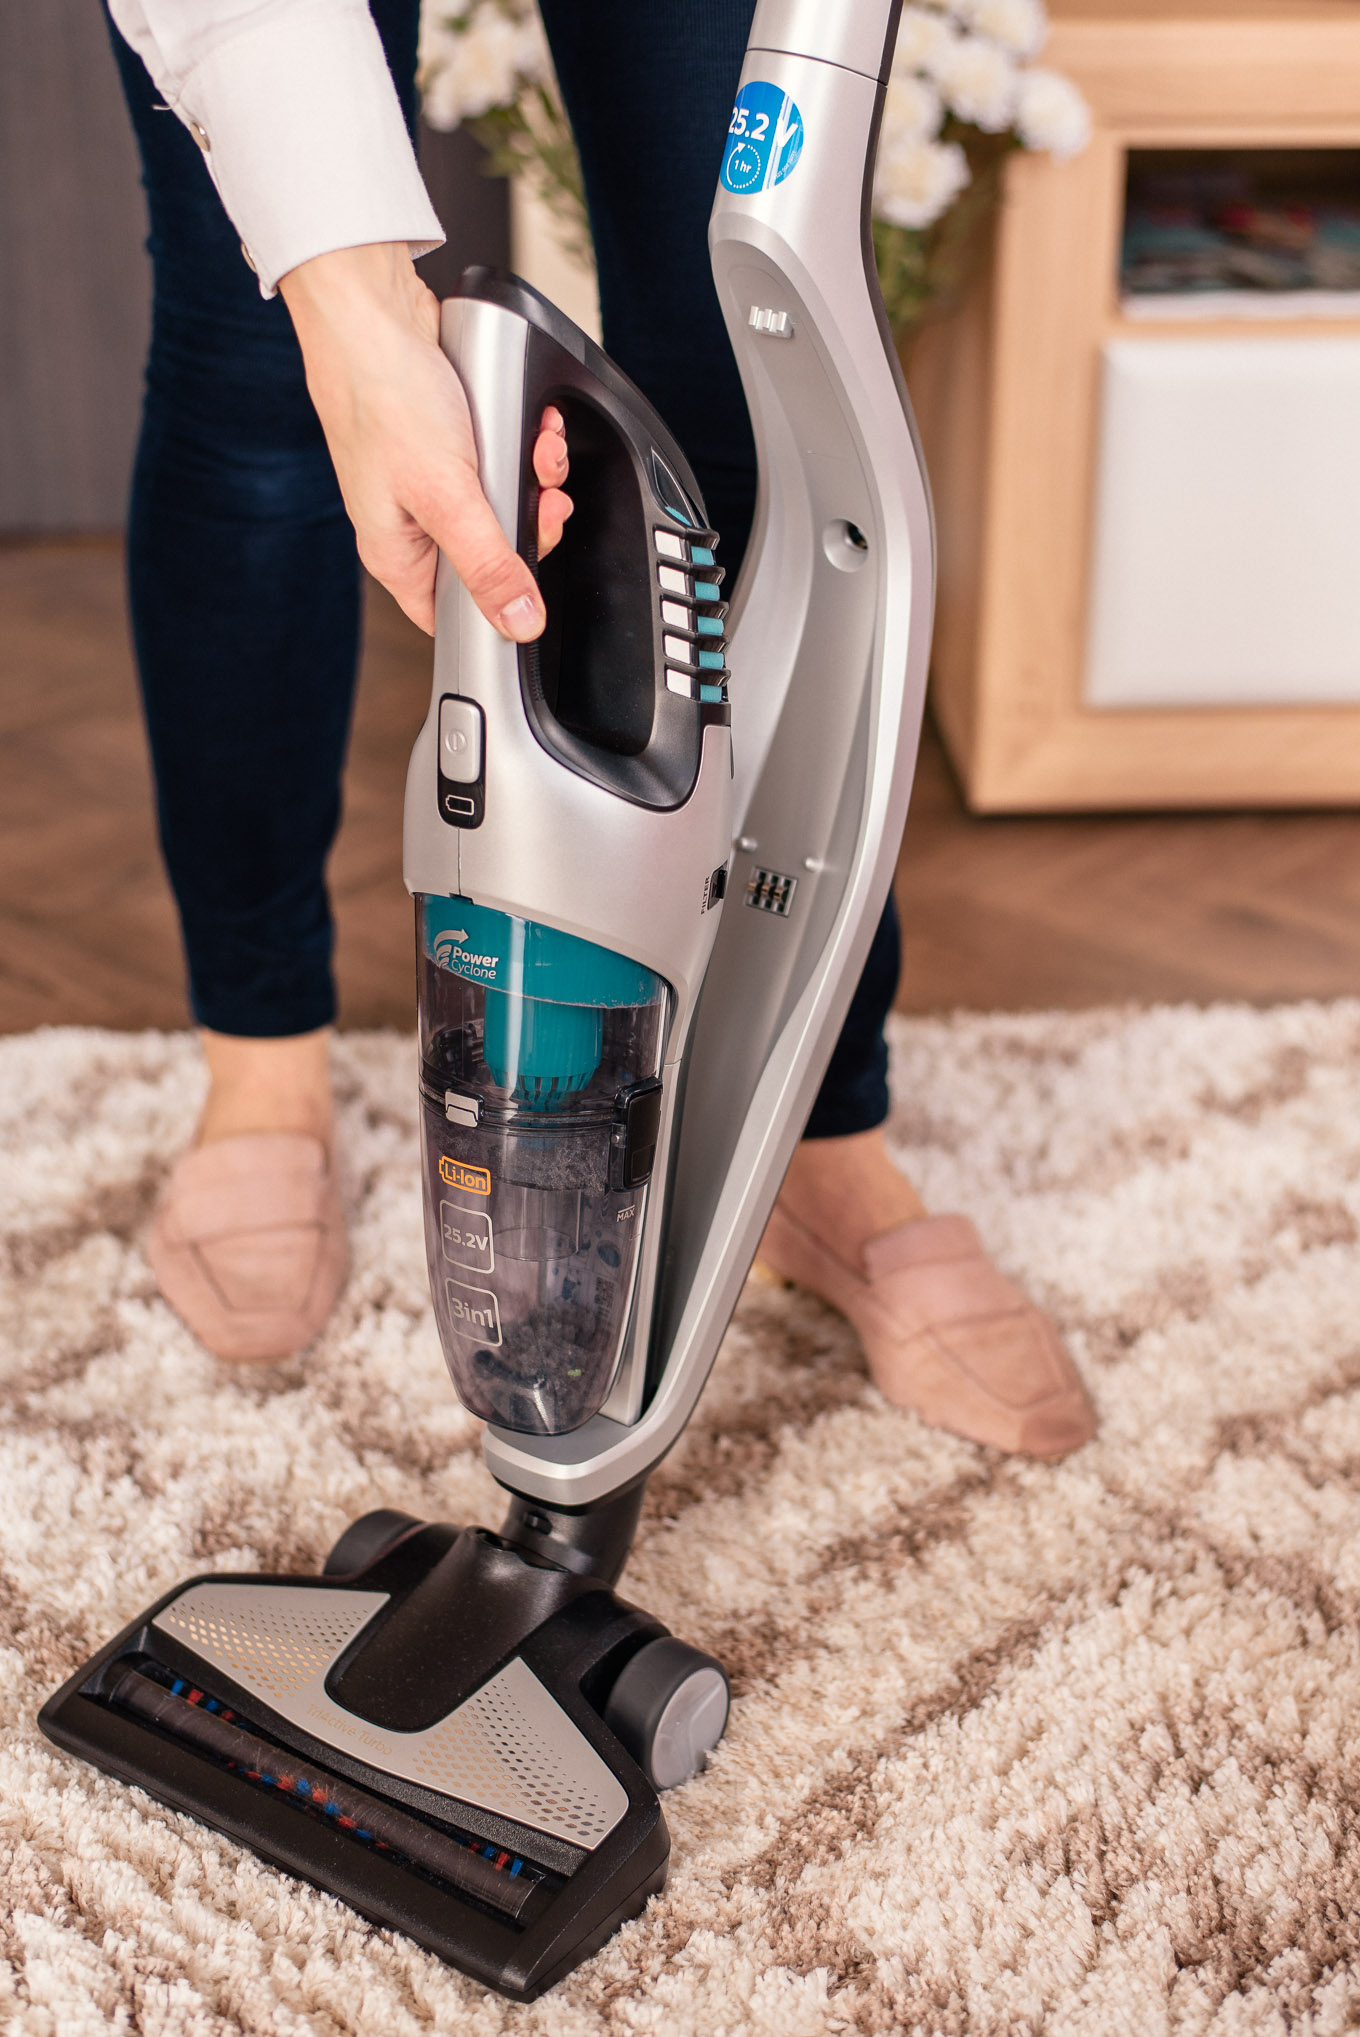 Philips powerpro cleaner